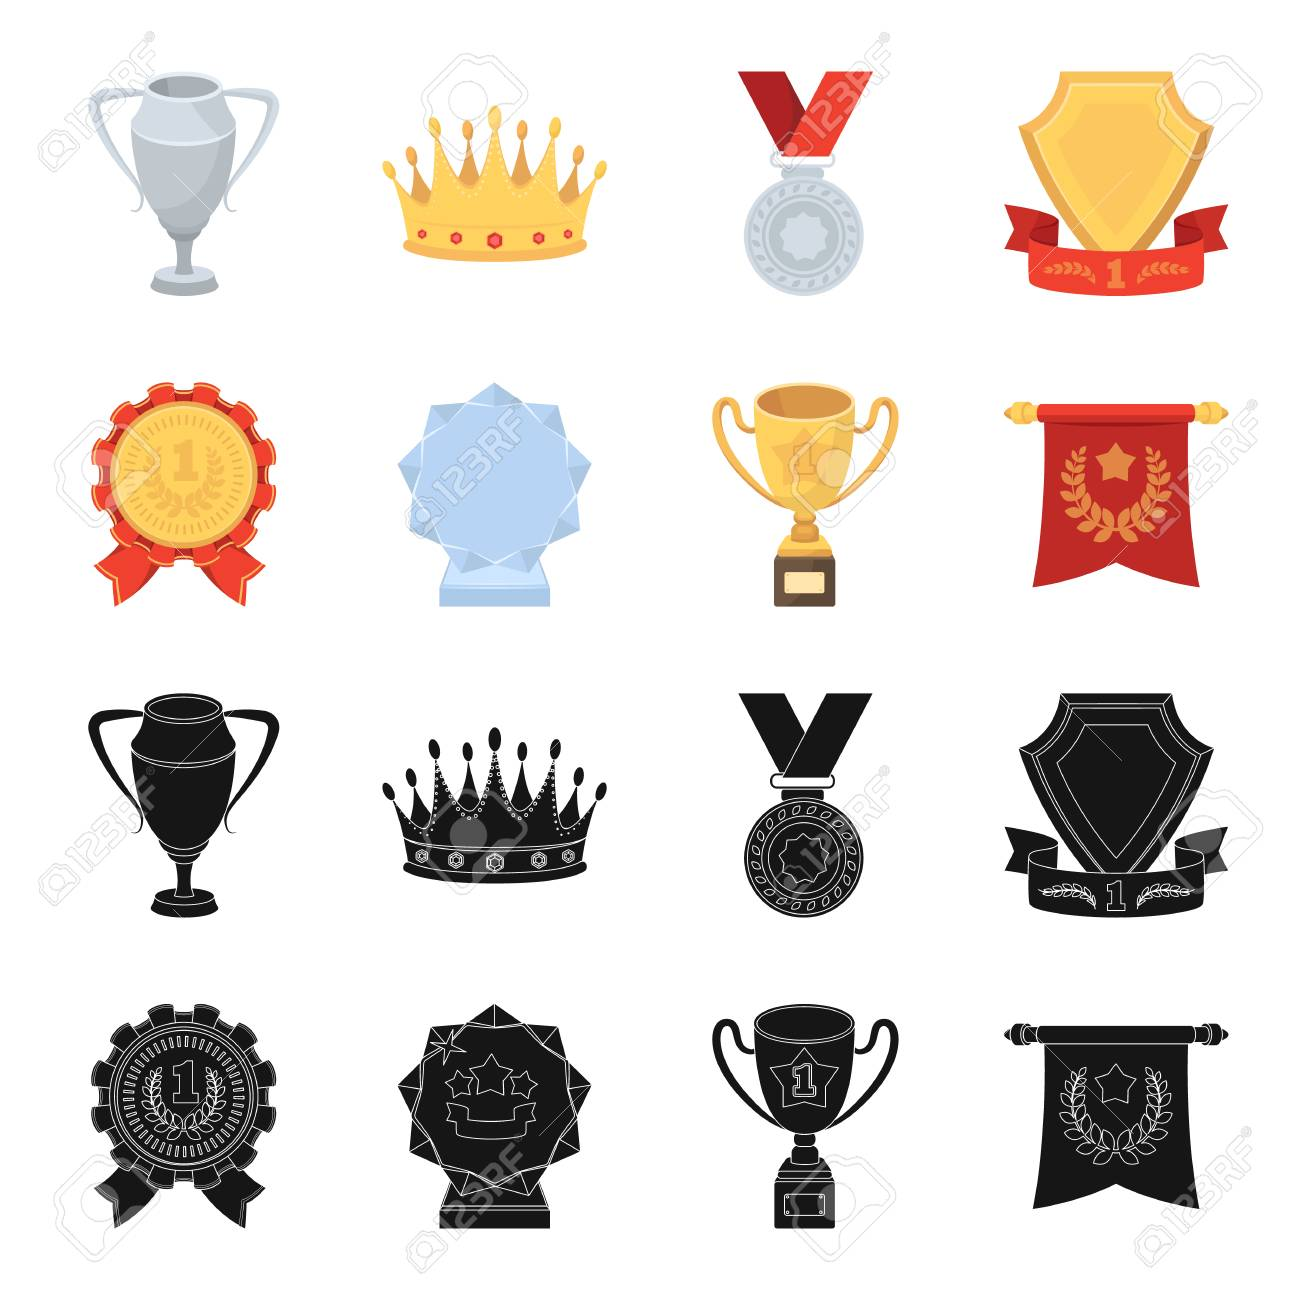 hight resolution of an olympic medal for the first place a crystal ball a gold cup on a stand a red pendant awards and trophies set collection icons in black cartoon style